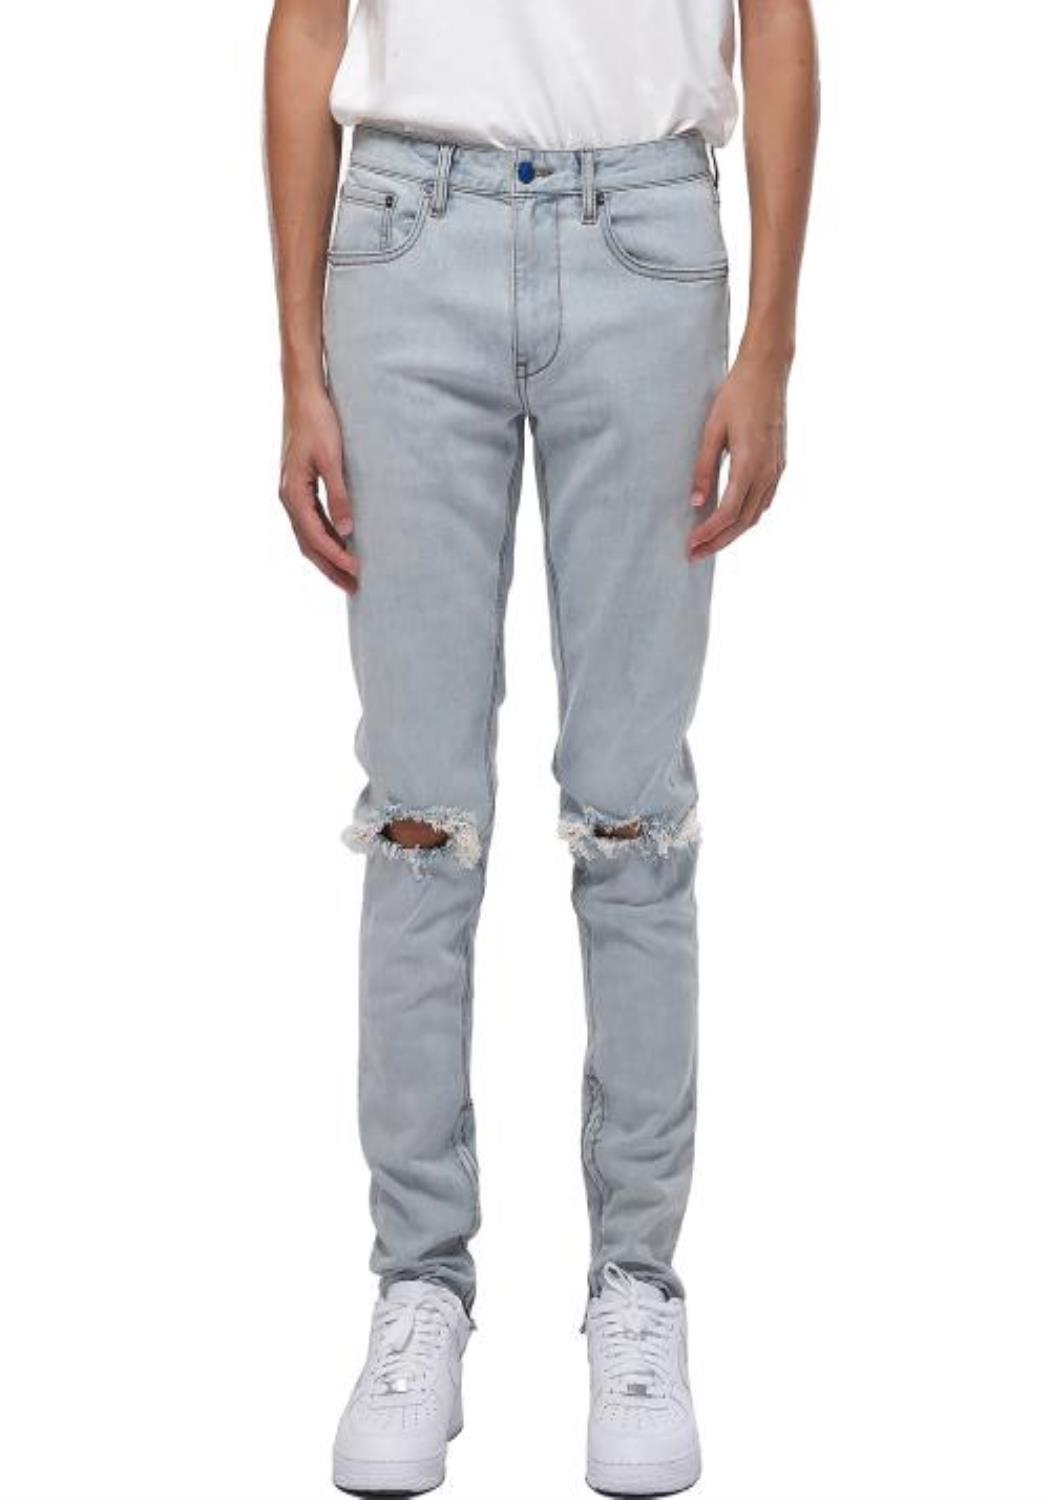 Konus Washed Out S2 Zipper Jeans